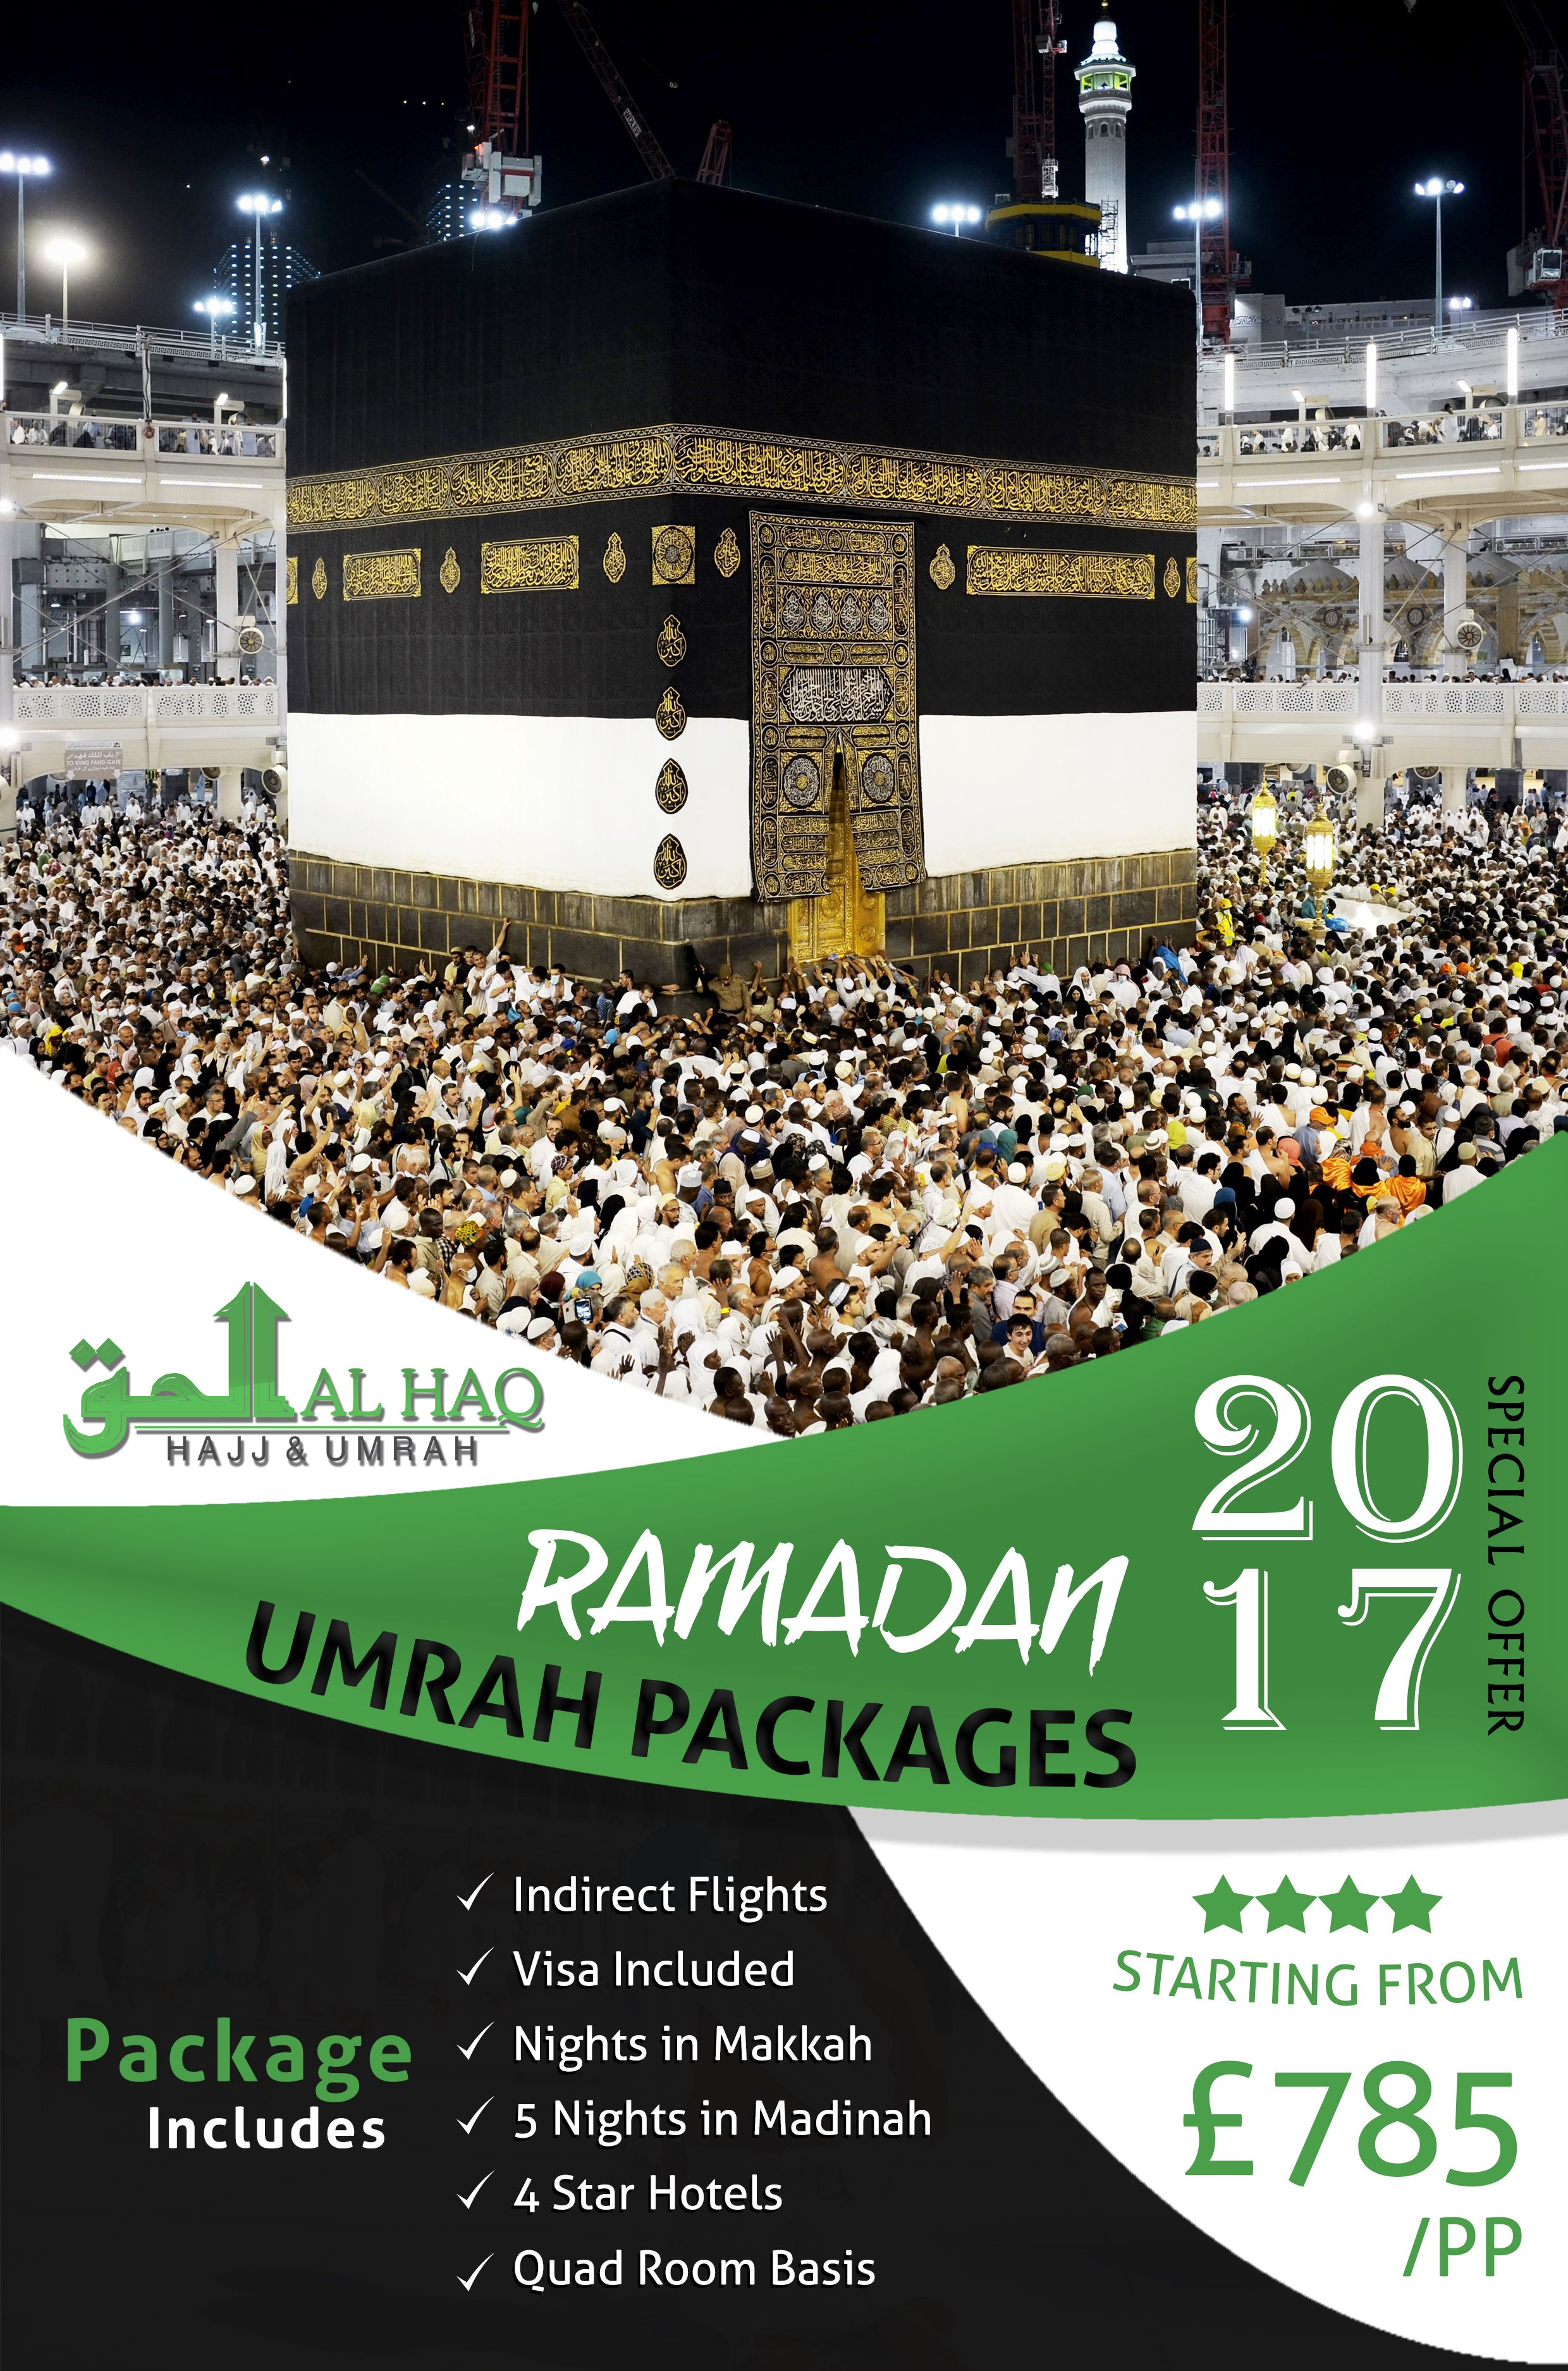 Umrah Banner: 10 Nights 4 Star Ramadan #Umrah Package 2017 Starting From